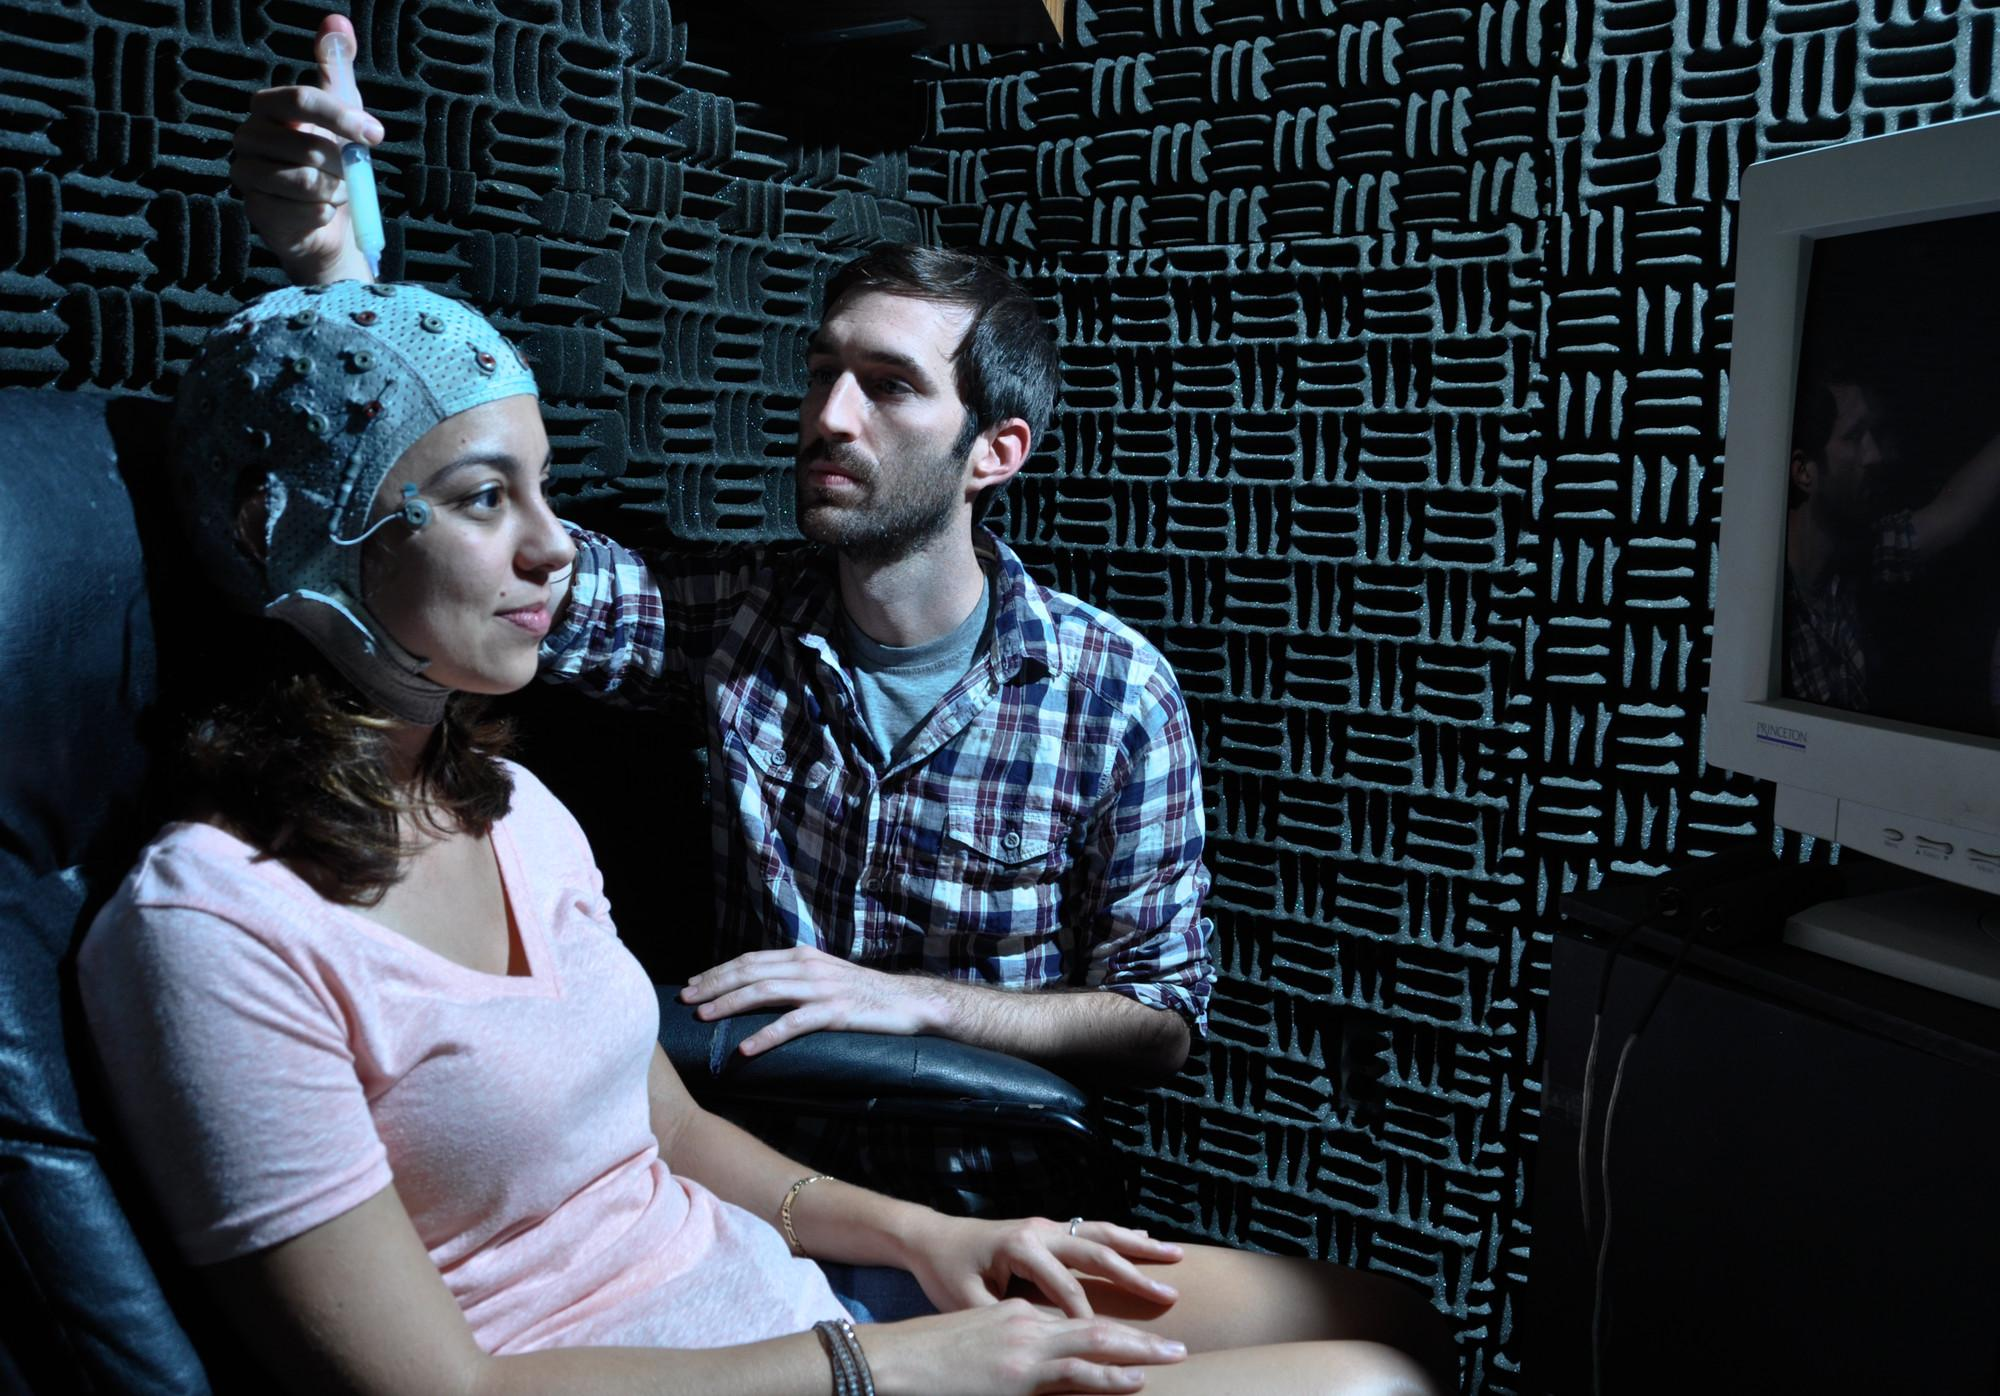 Jay Sanguinetti works with Davi Vitela to take EEG scans of her brain activity while she views a series of images for his study.